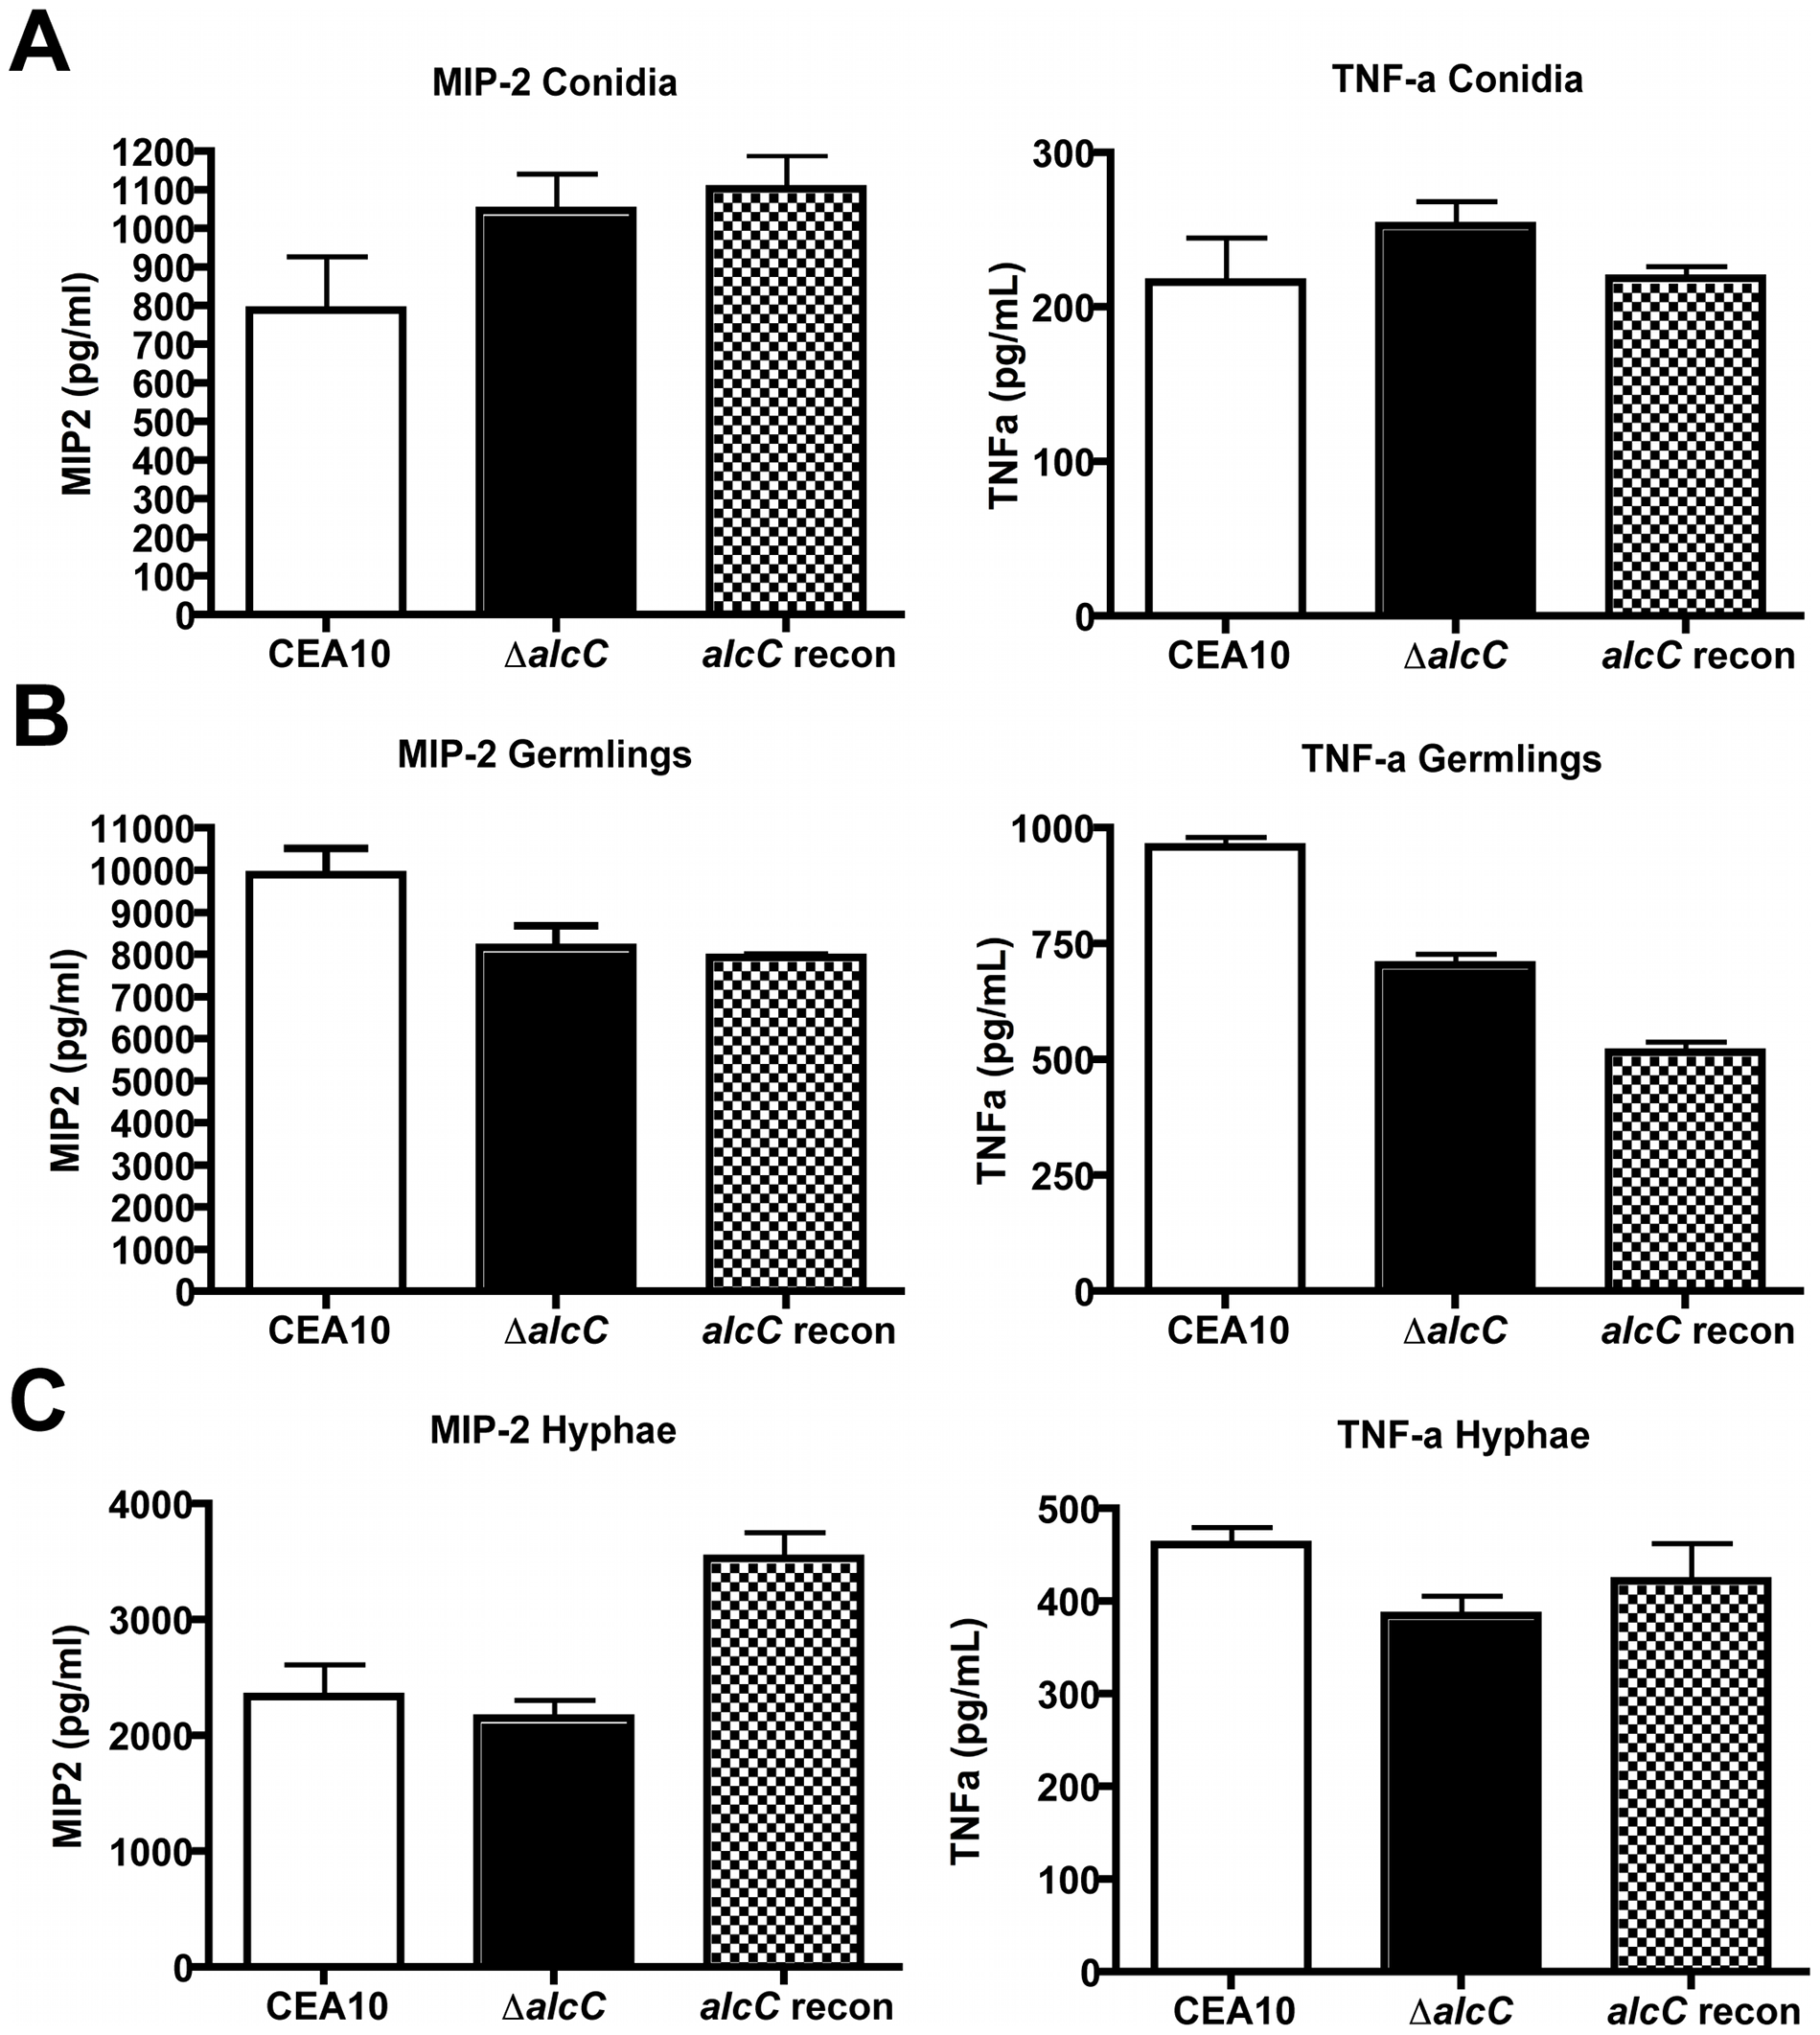 Increased cytokine response is not caused by cell wall changes of the Δ<i>alcC</i> strain.